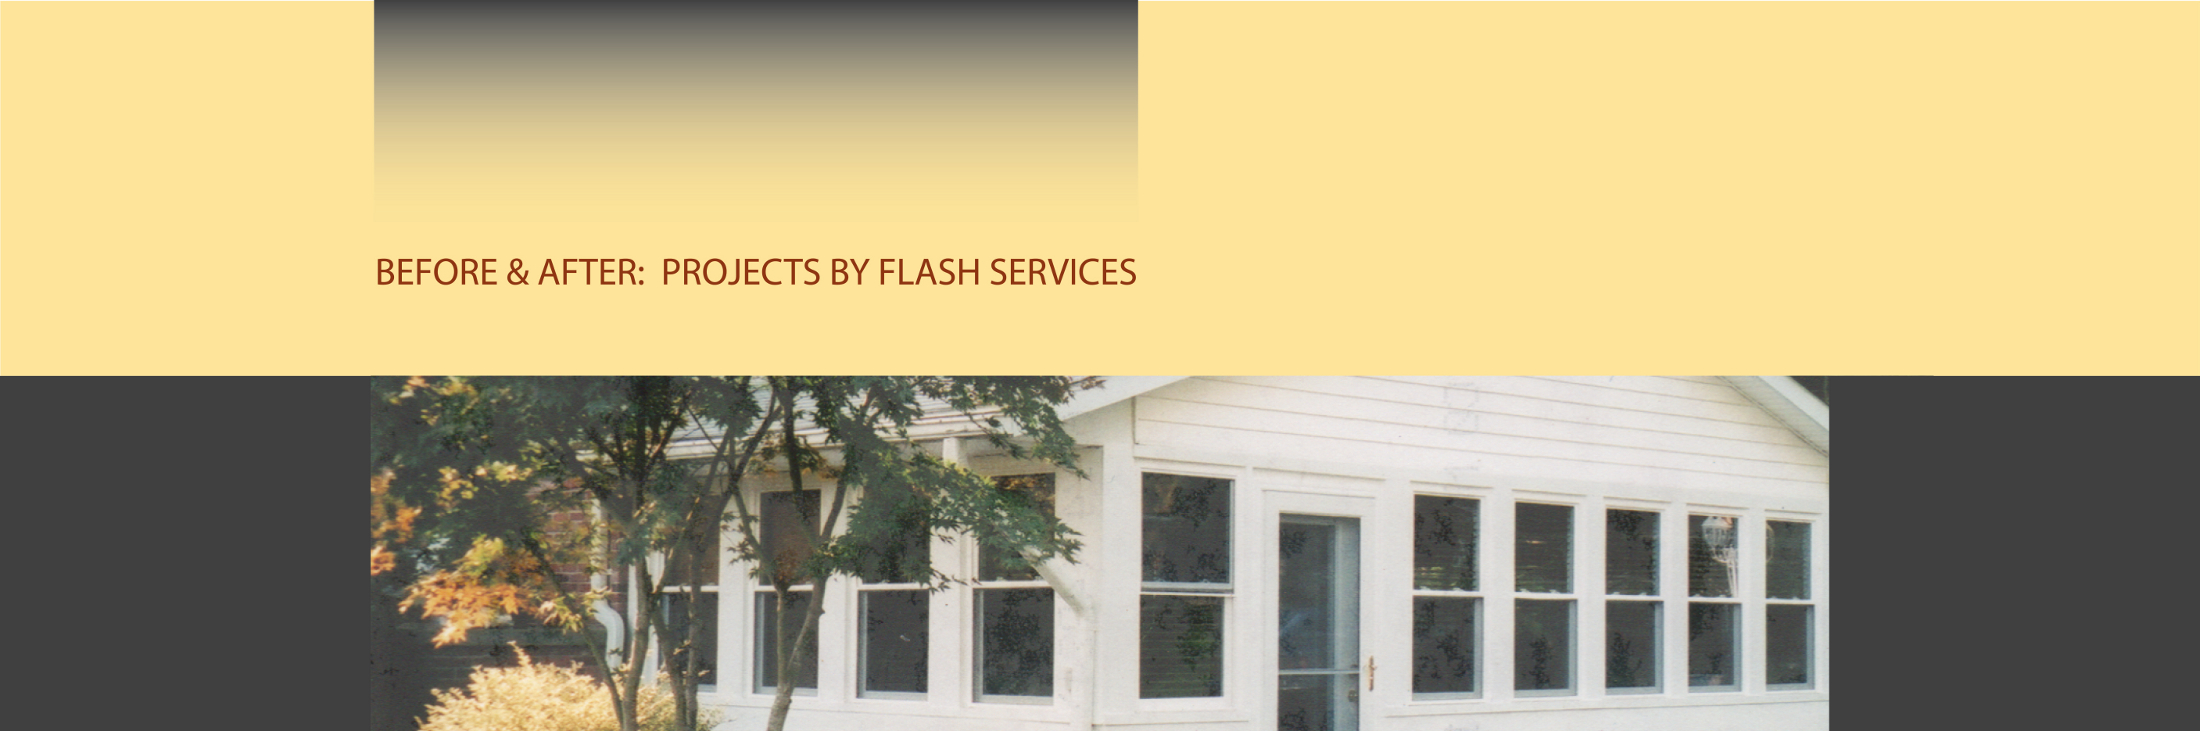 Before & After: Projects by Flash Services